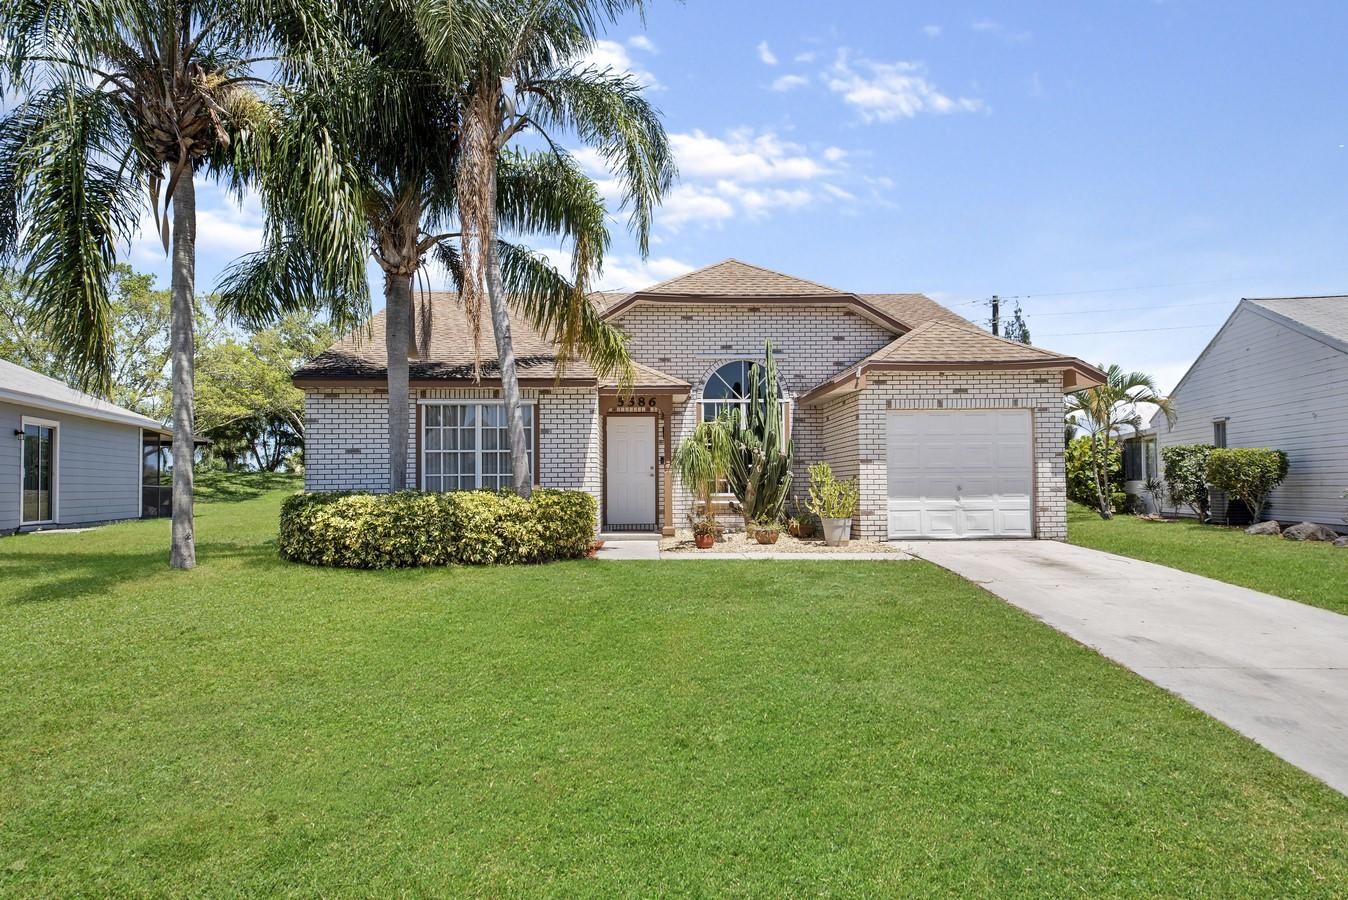 Home for sale in Waterchase West Boynton Beach Florida